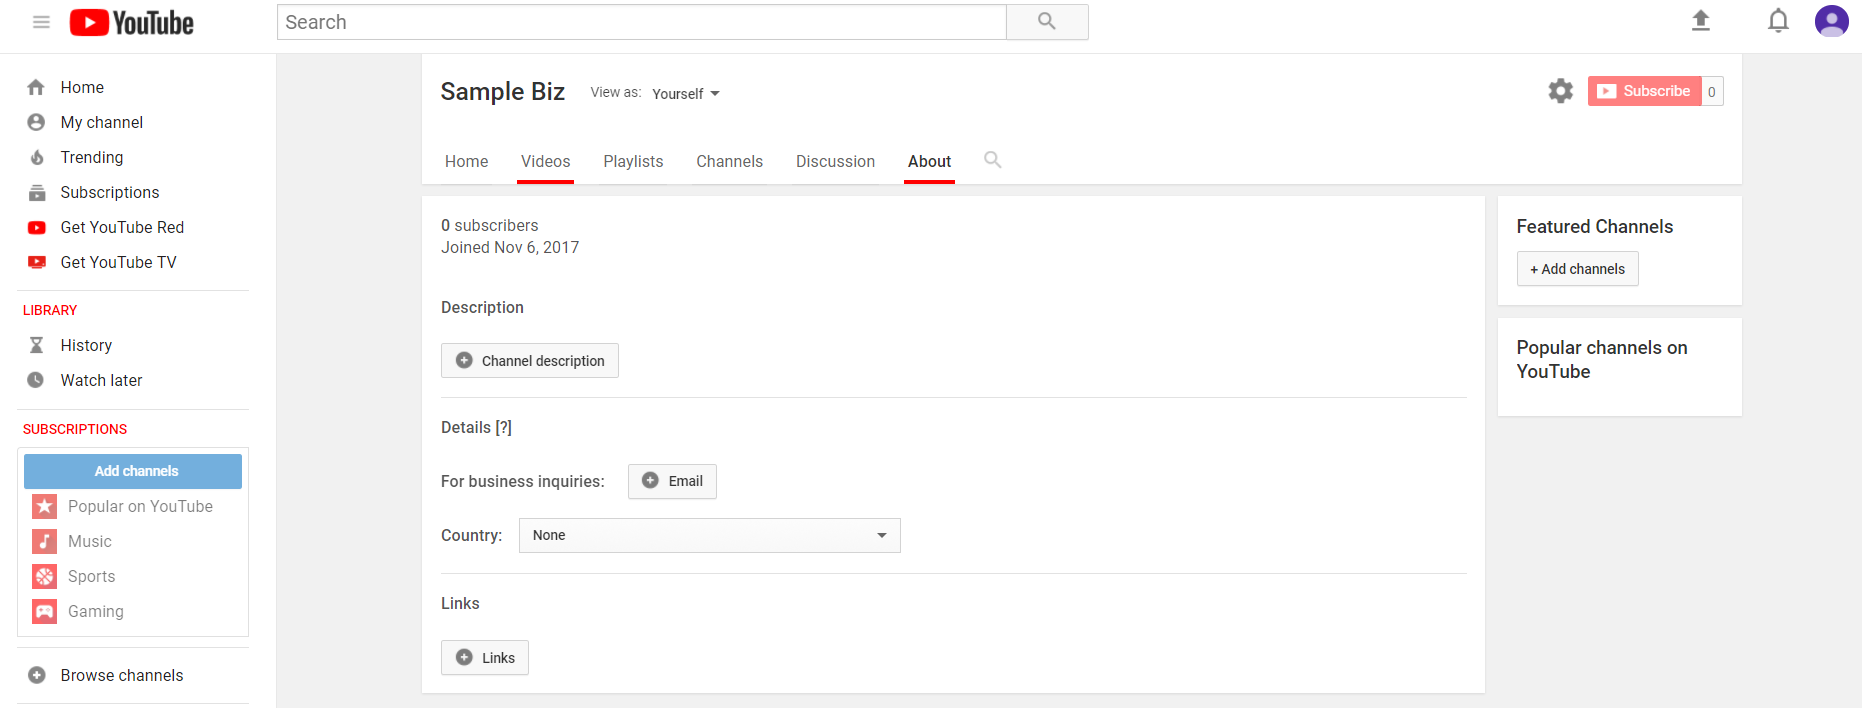 """Unedited YouTube """"About"""" page"""